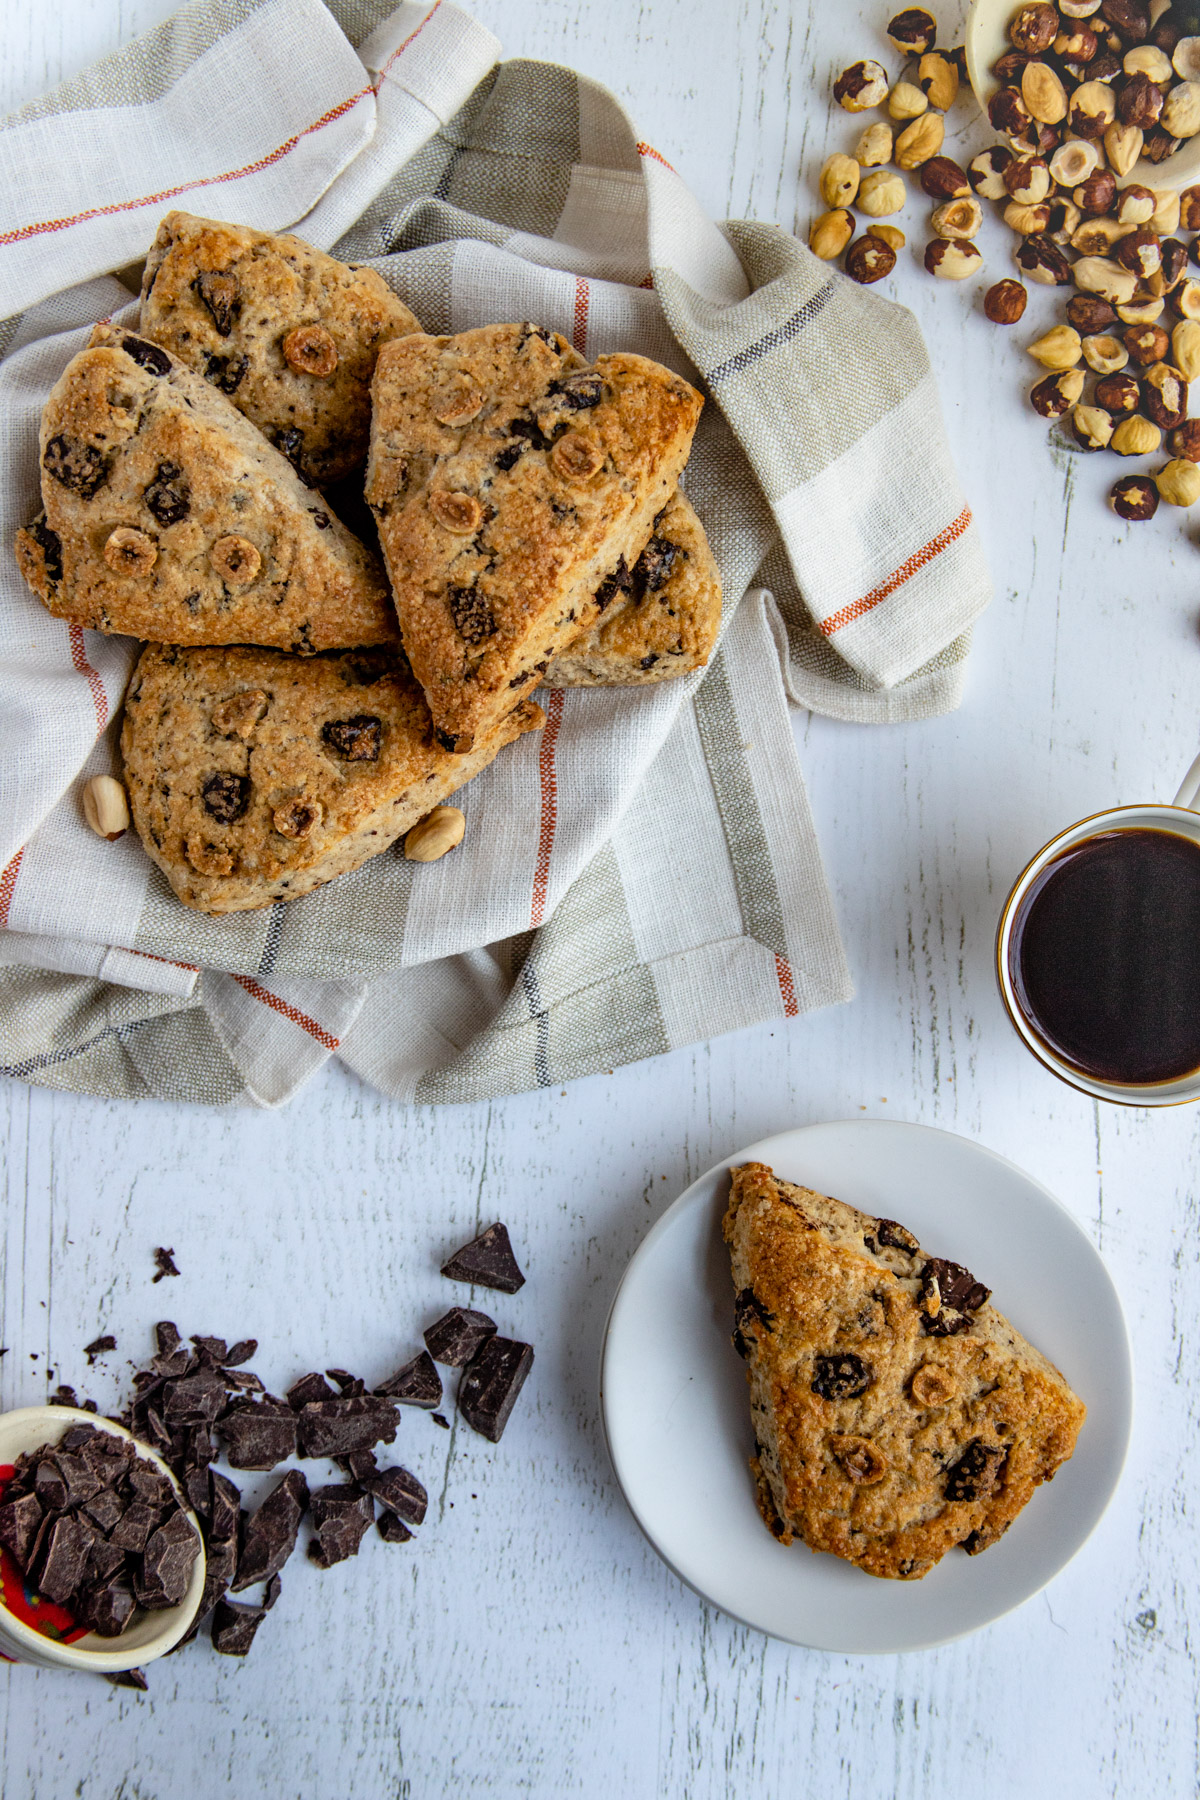 Baked chocolate hazelnut scones in a basket with a scone on a small plate with a cup of coffee and bowls of chopped chocolate and chopped hazelnuts